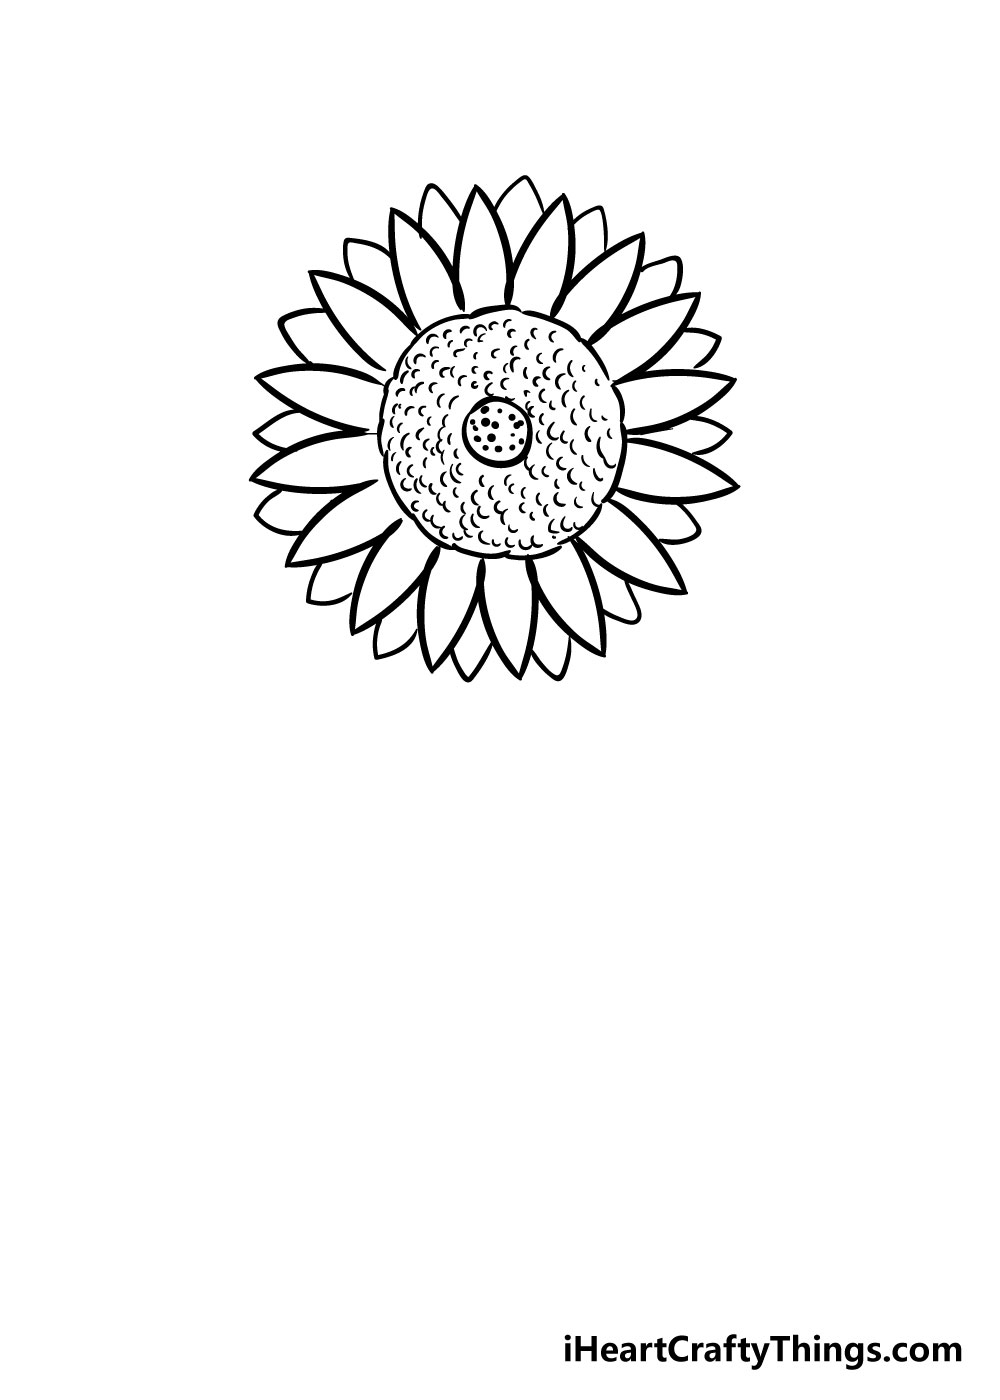 sunflower coloring step 6